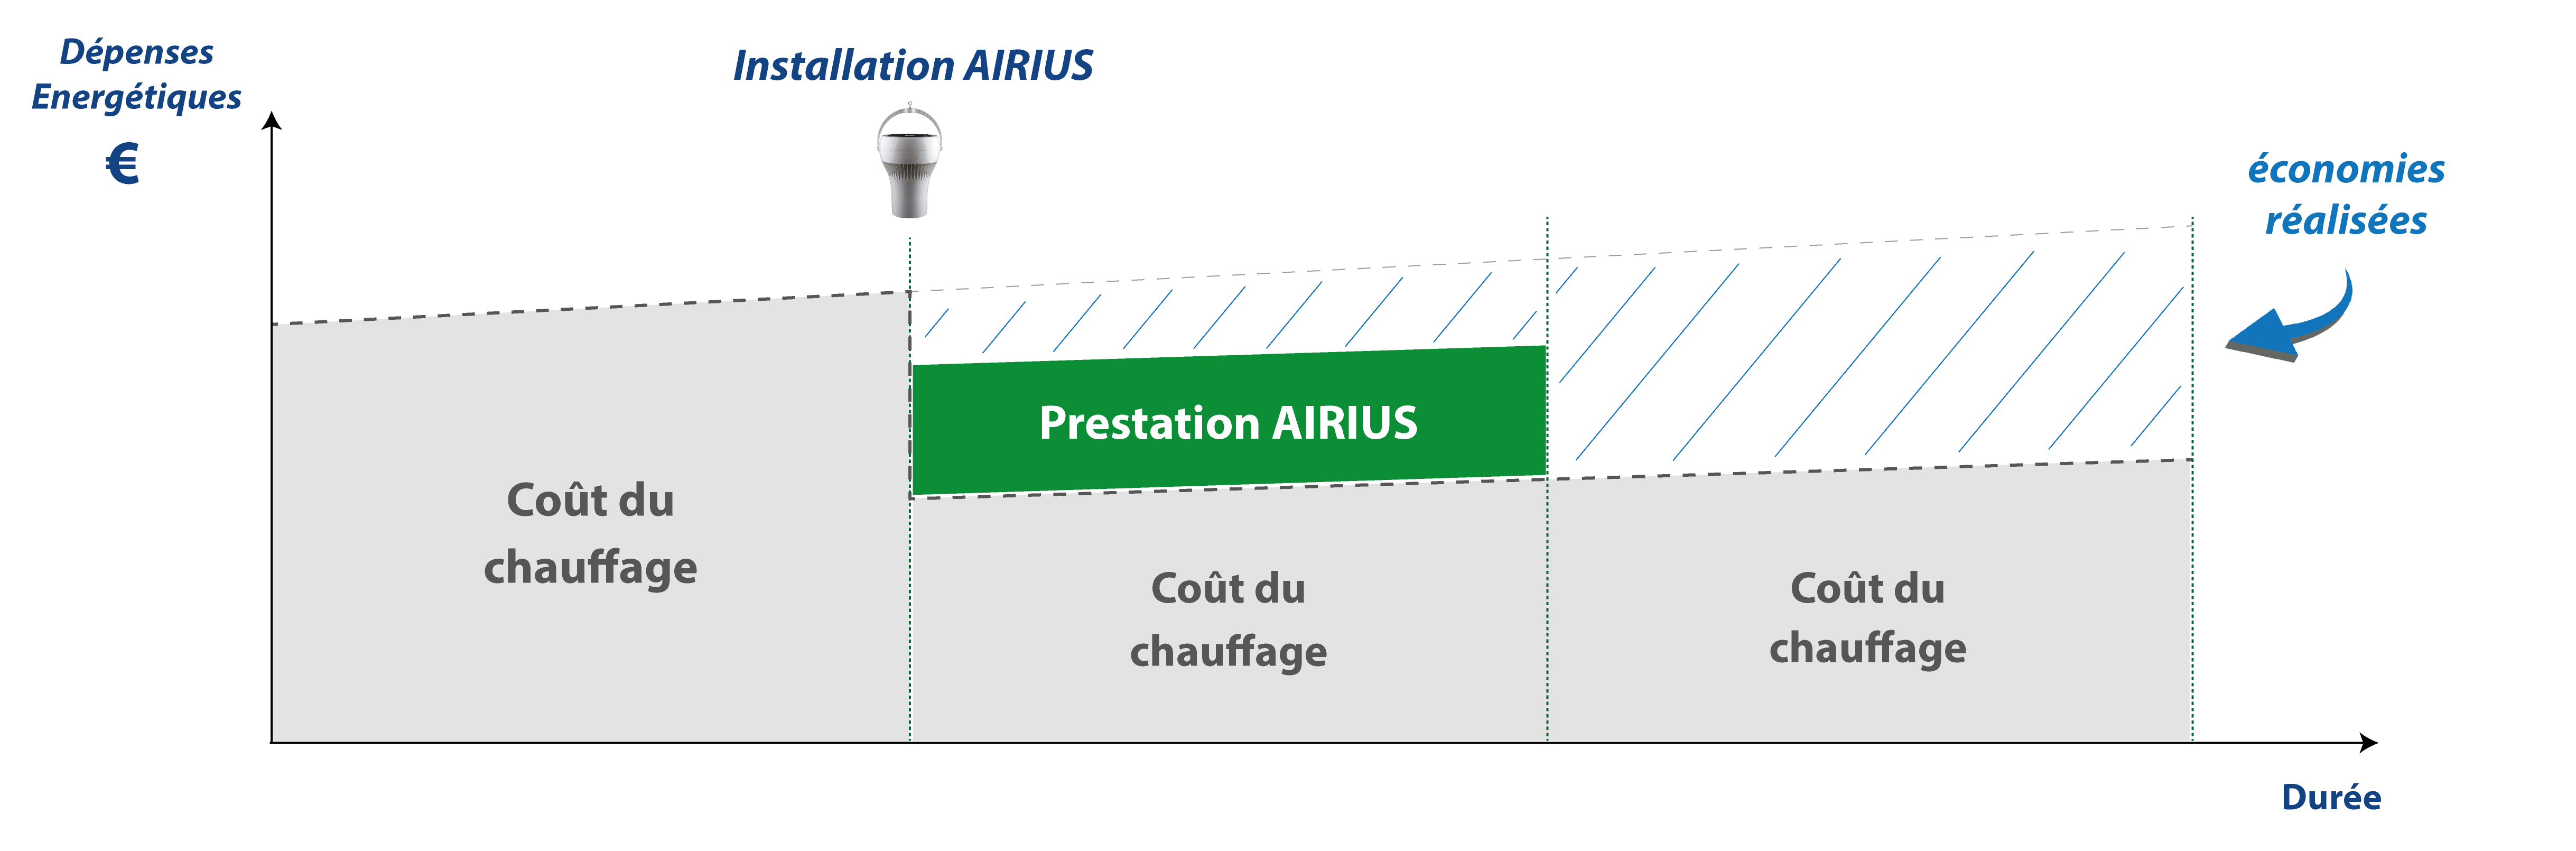 https://www.airius.solutions/wp-content/uploads/Schema-depenses-energetiques-FR.png